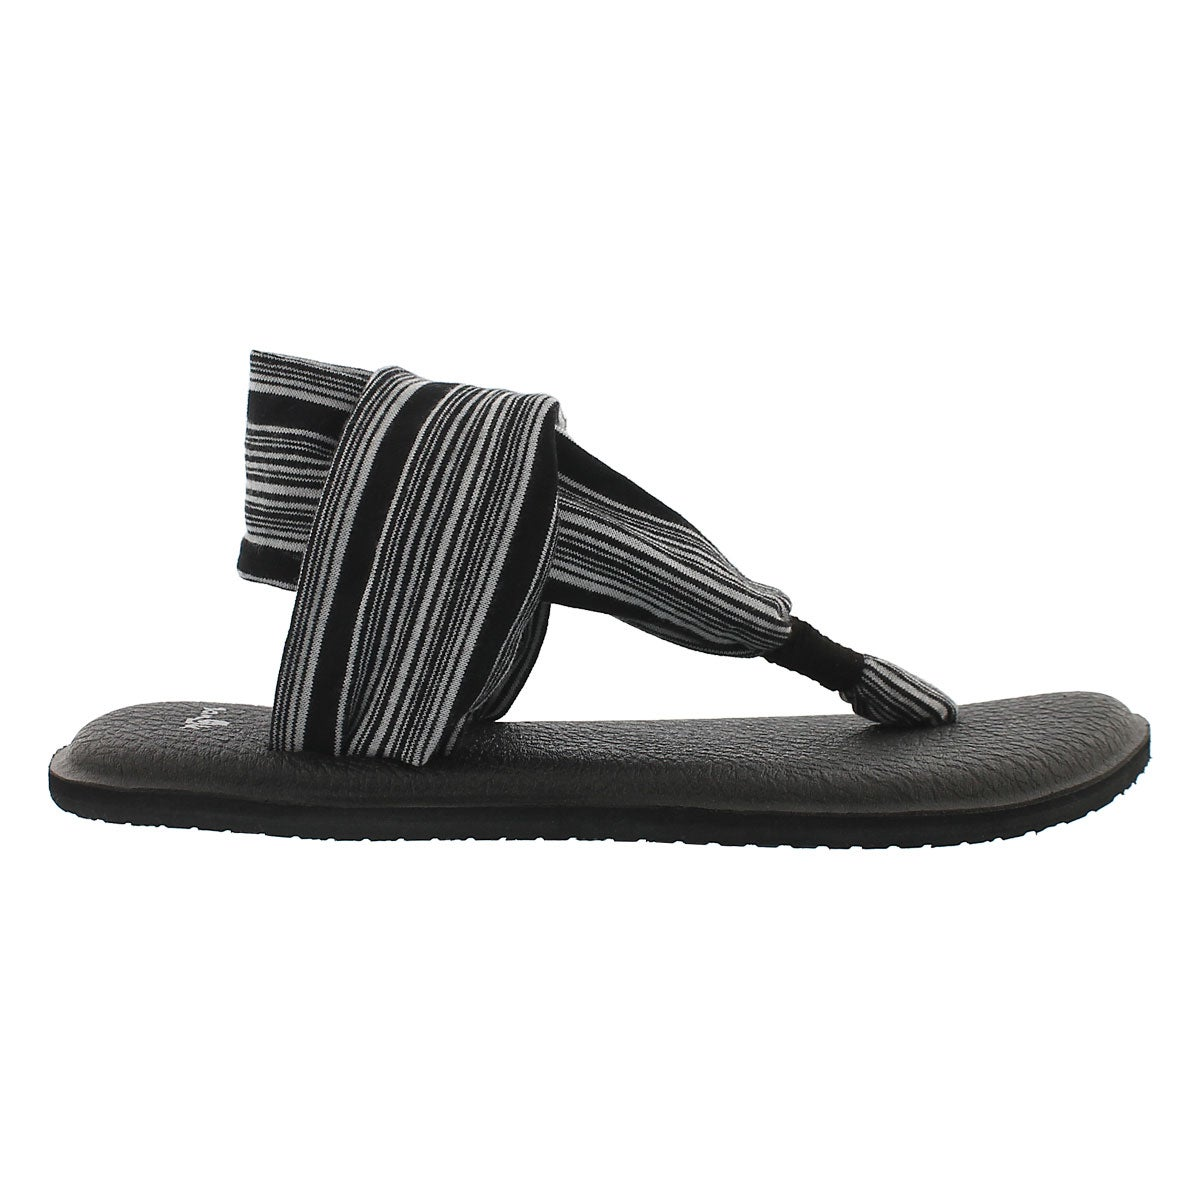 Lds Yoga Sling black/white thong sandal